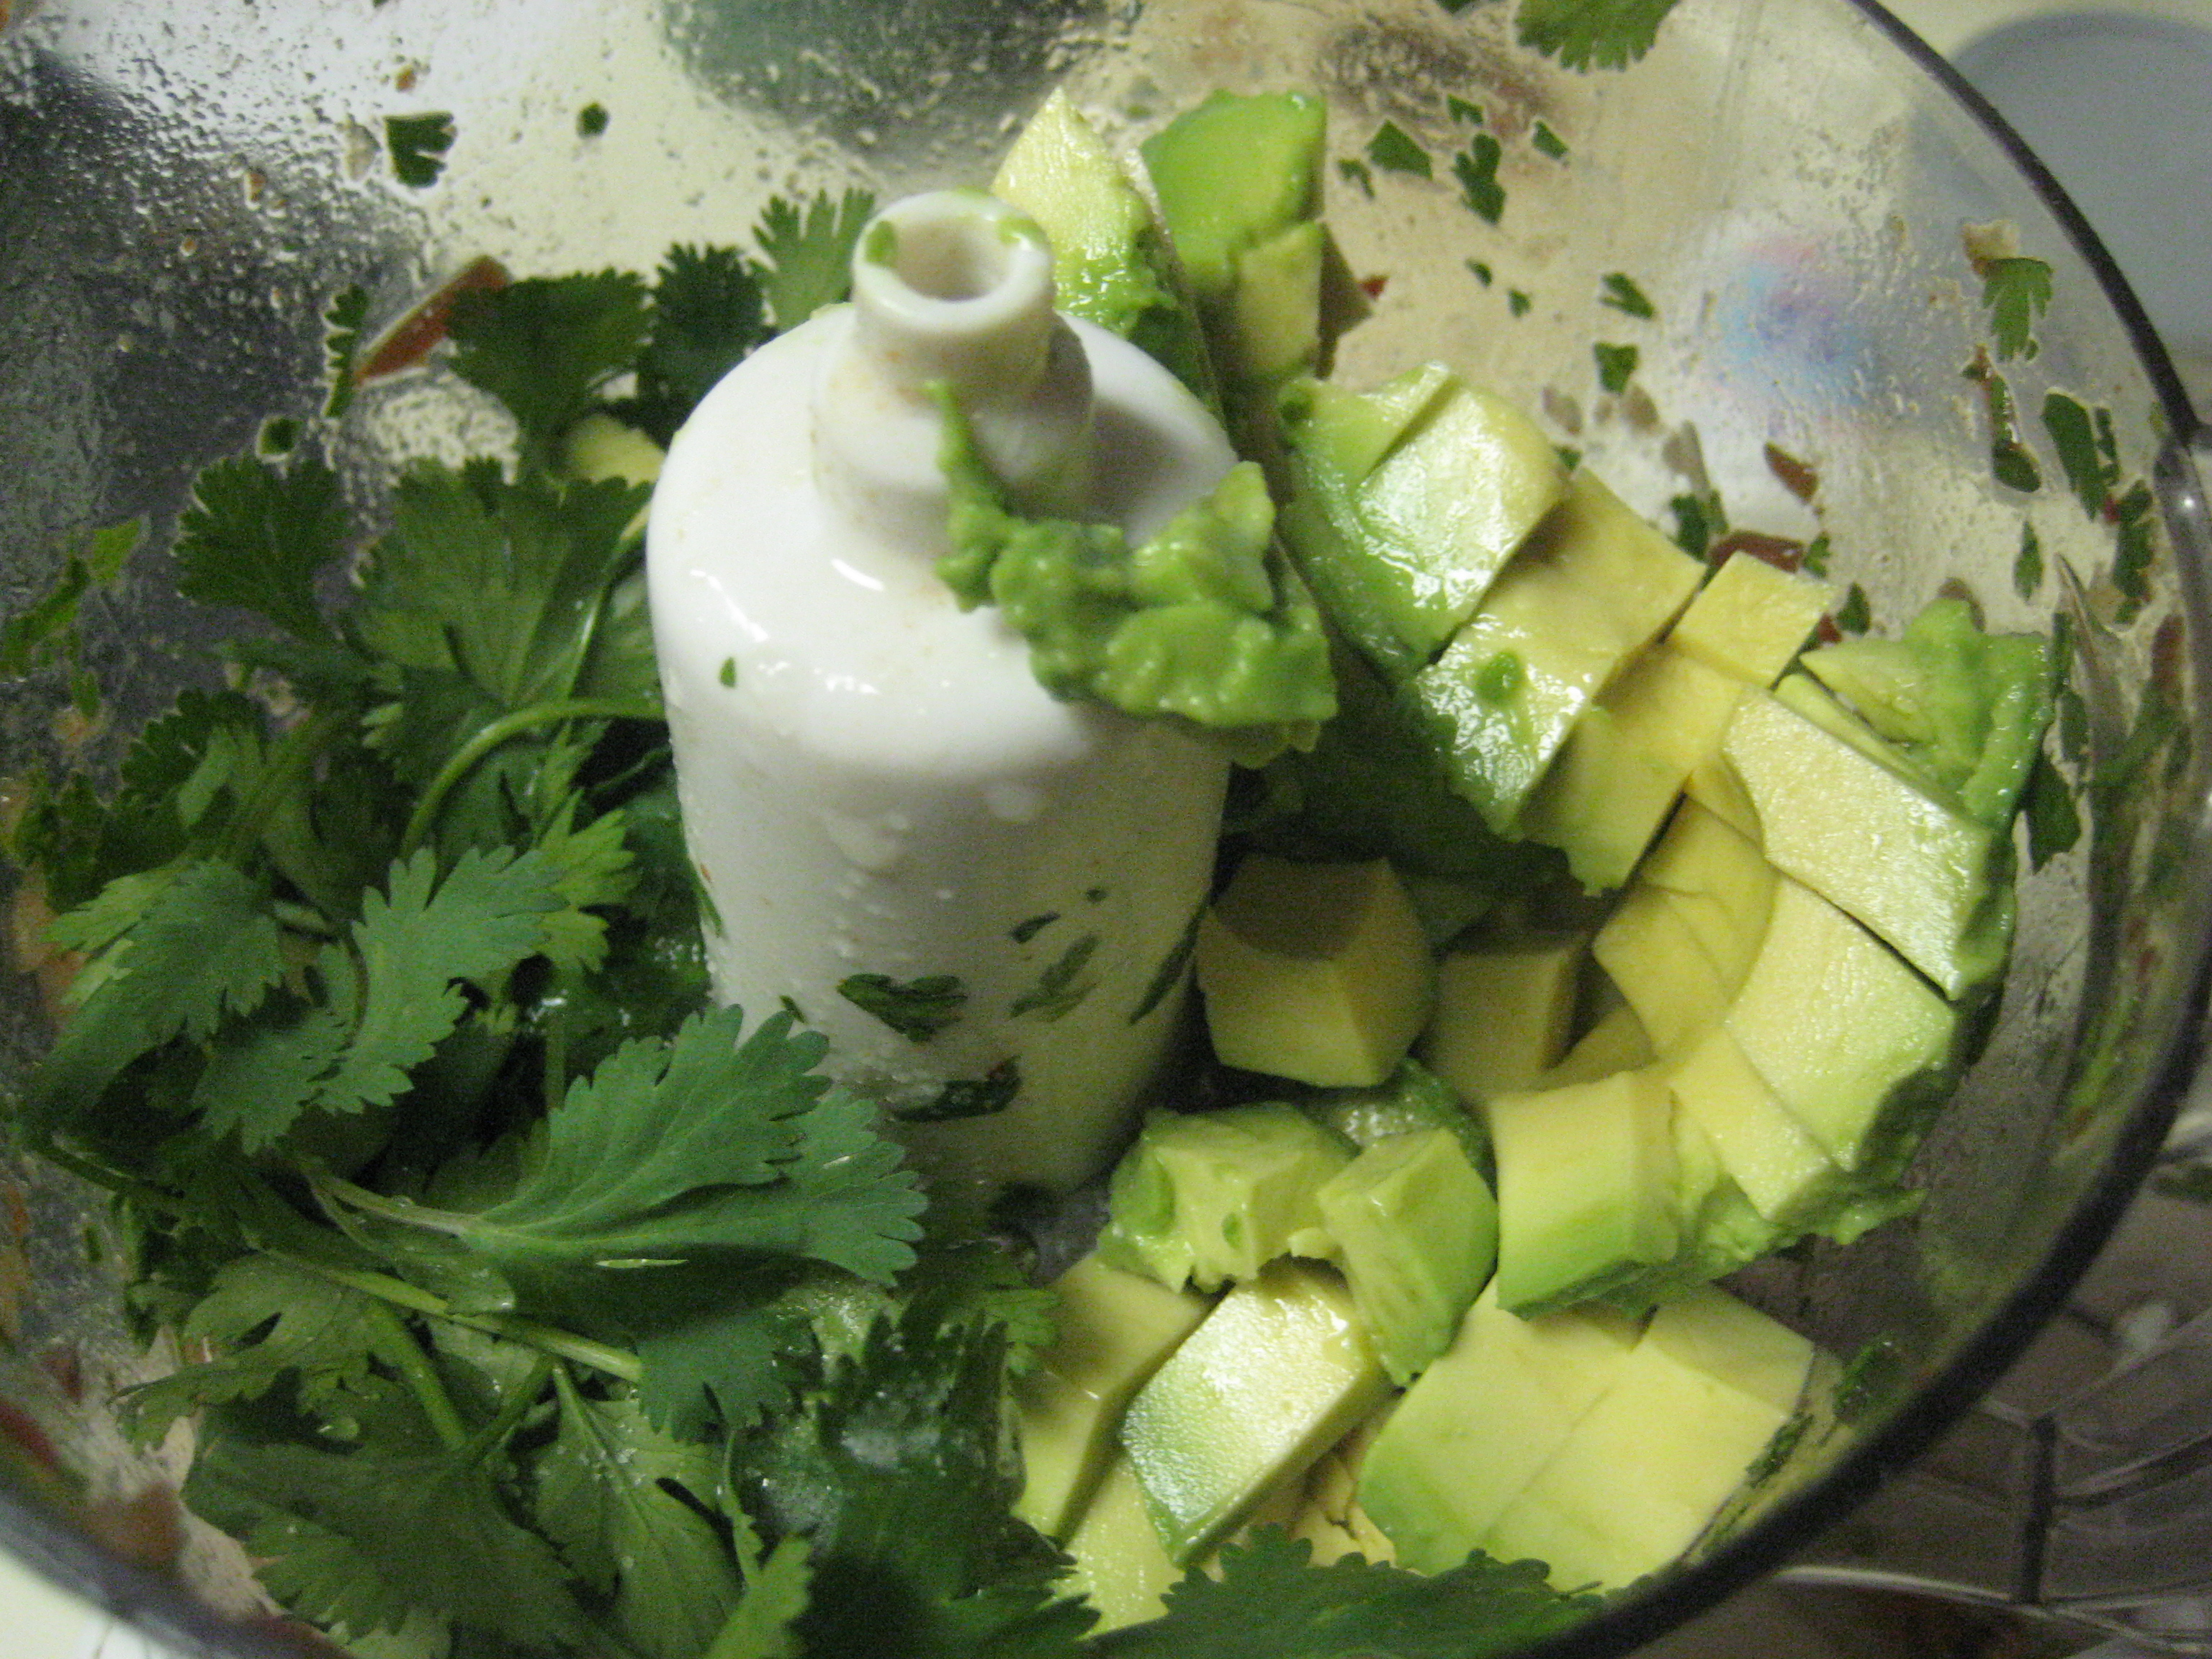 Mixing the guacamole in the food processor.